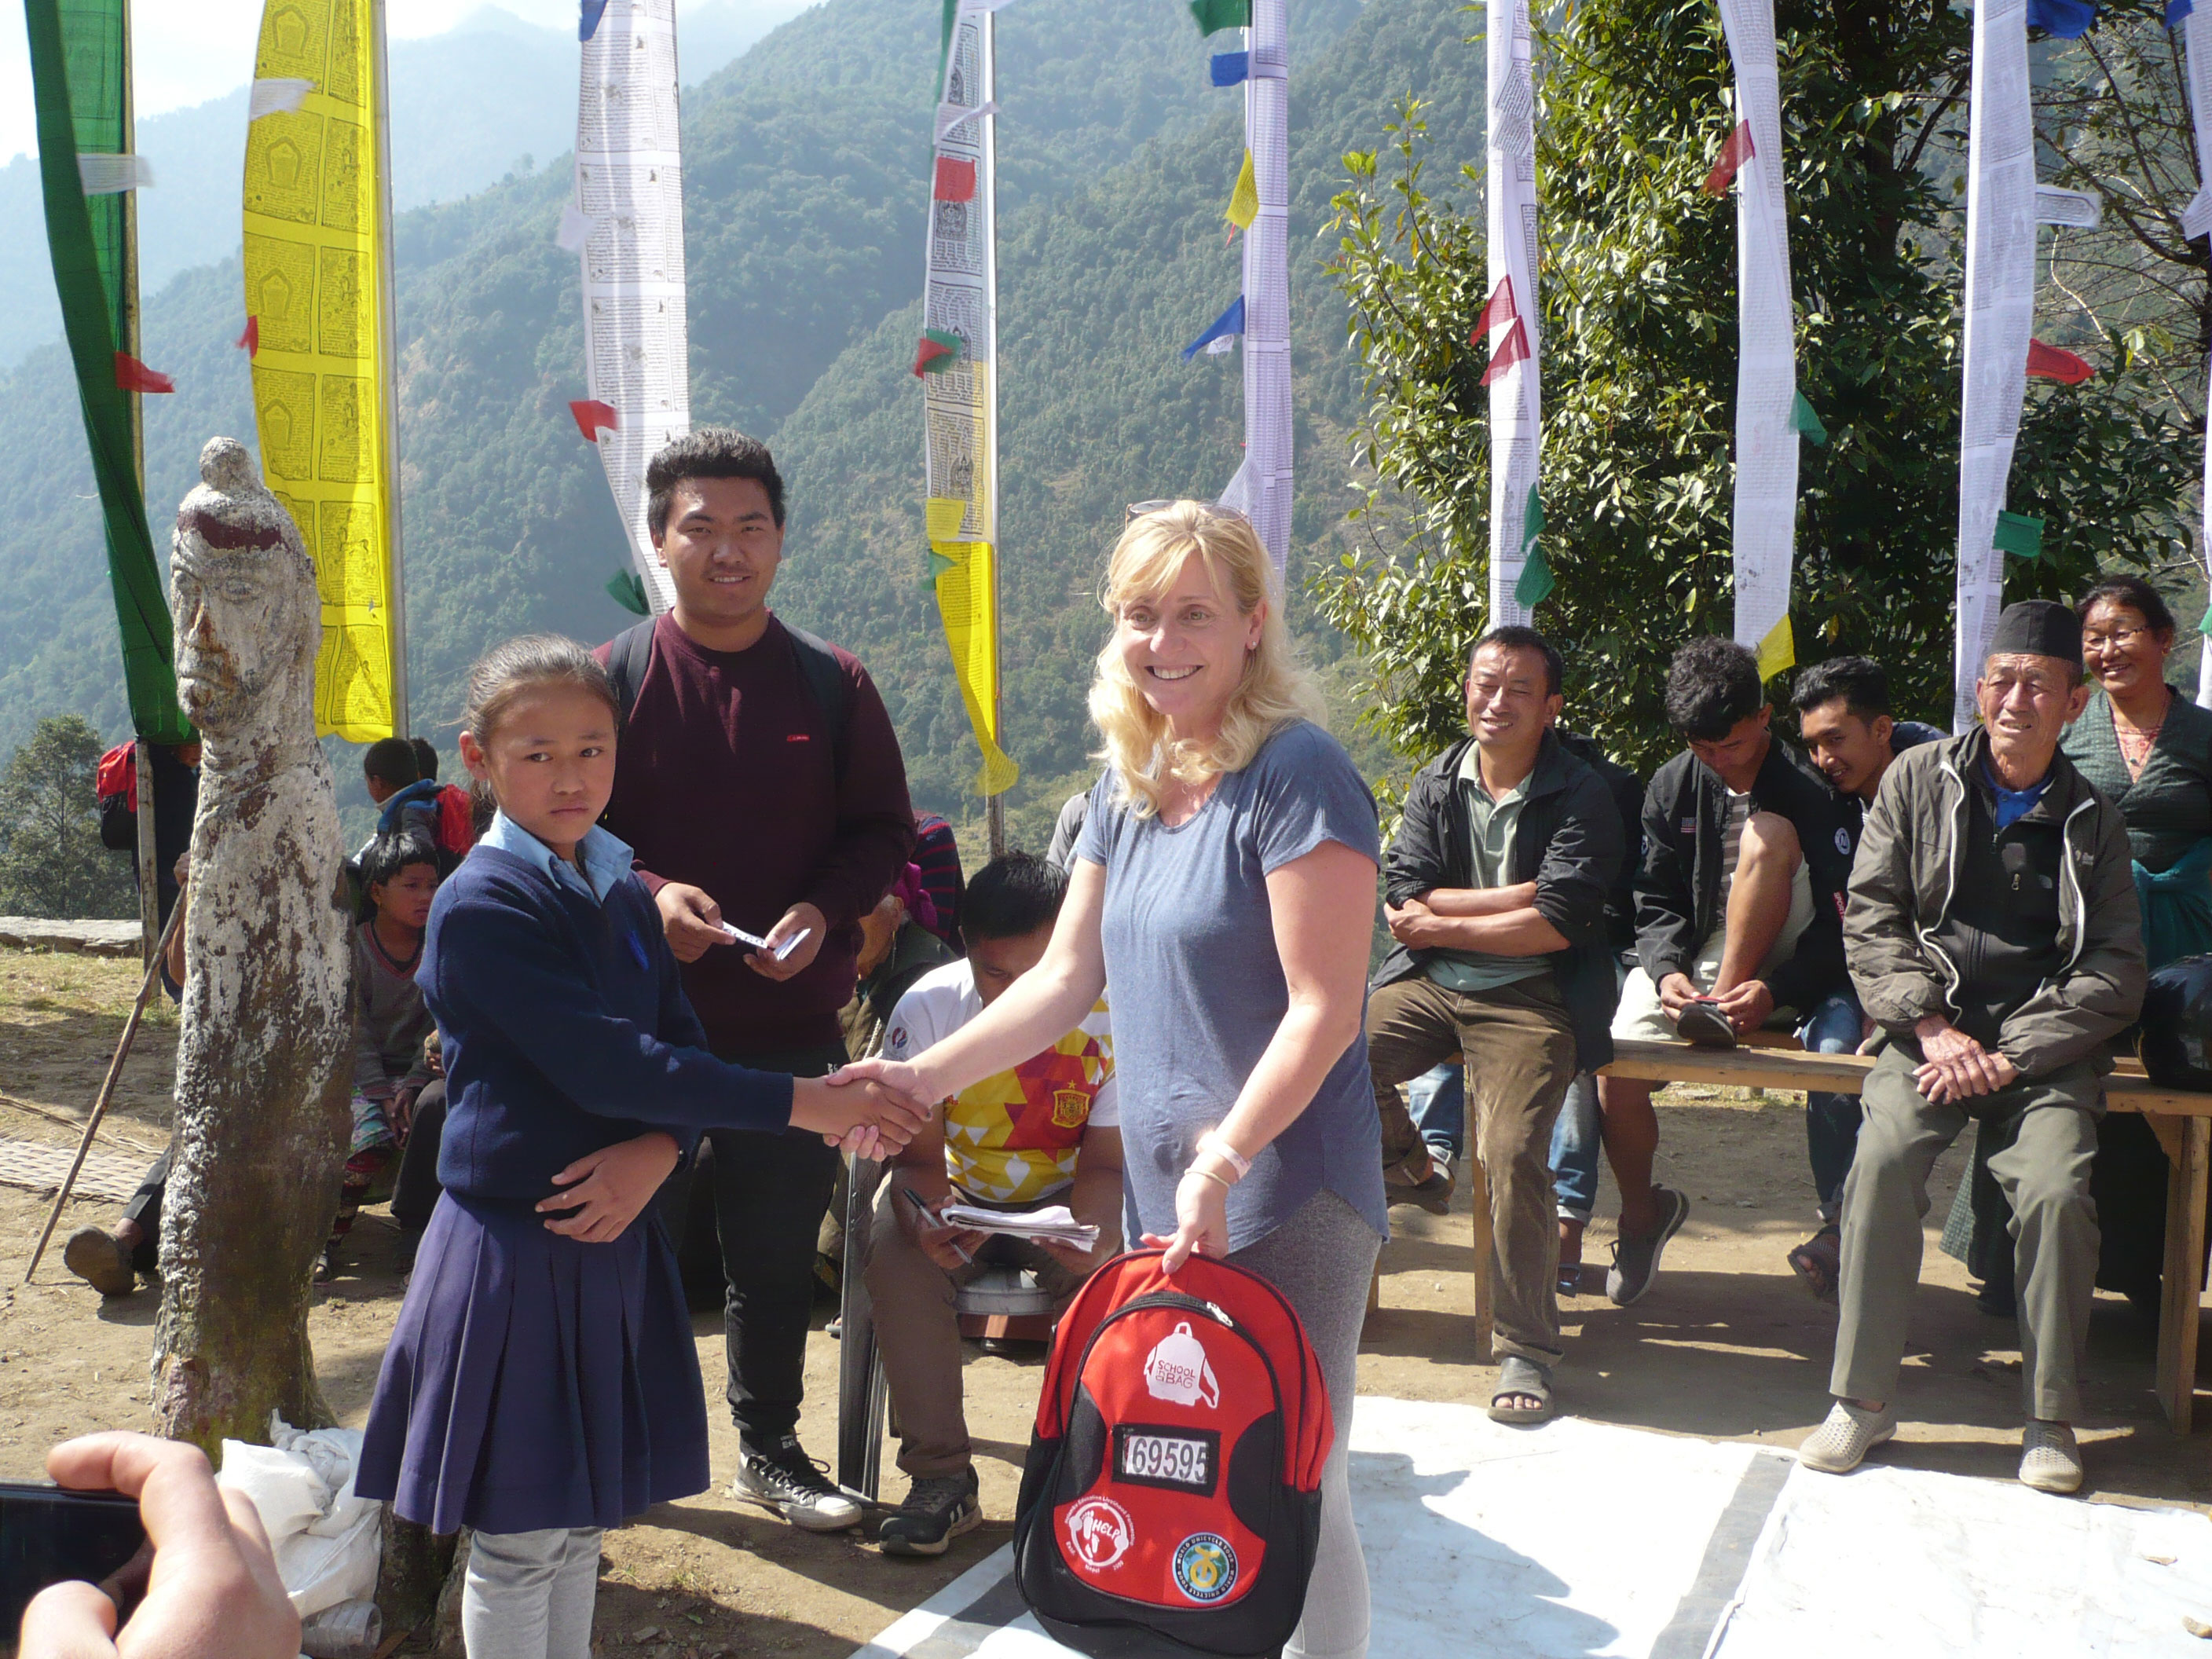 https://fulloncouriers.co.uk/wp-content/uploads/2019/05/nepal-2.jpg